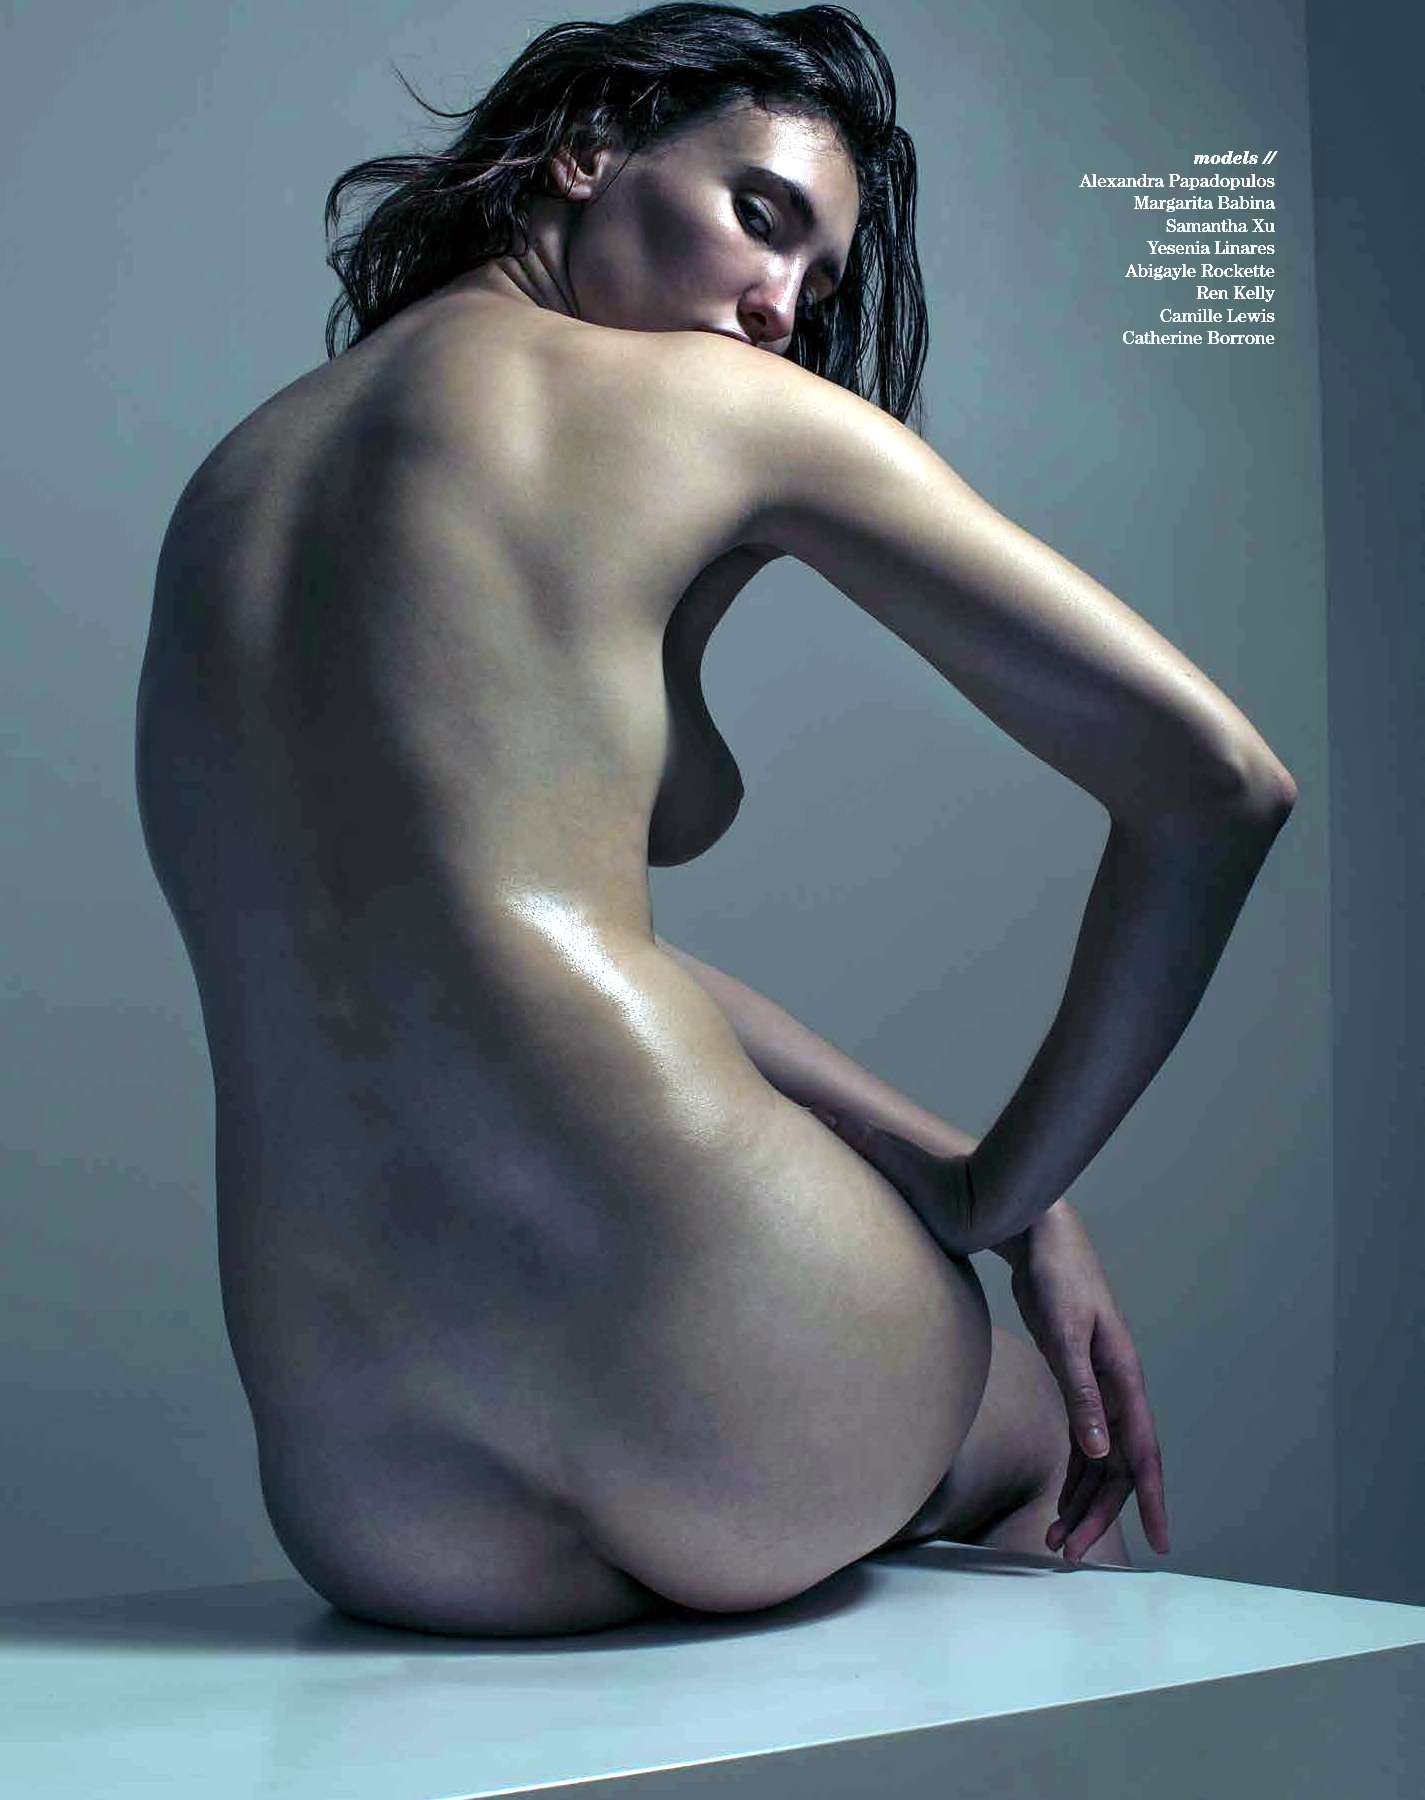 Hot Sculpt Nude photoshoot for Treats Magazine